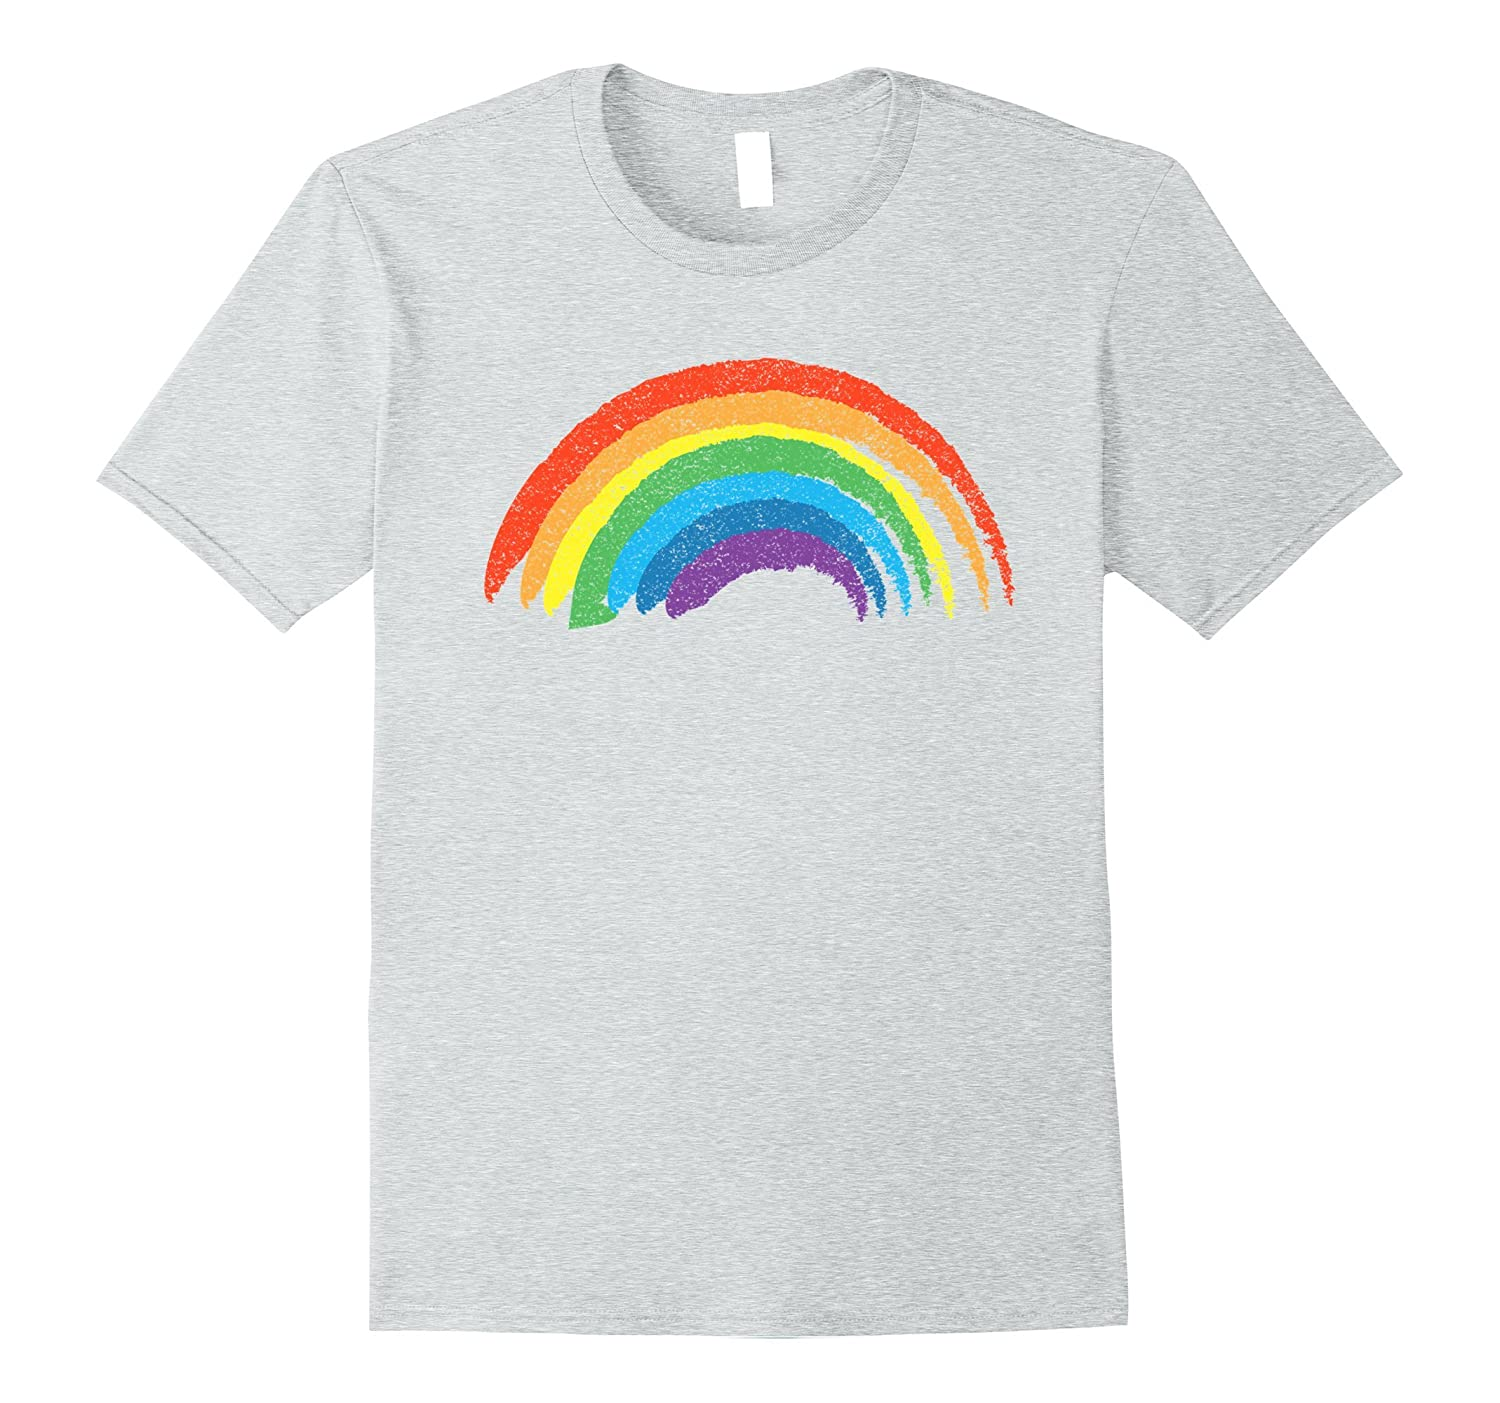 Vintage Retro Rainbow T-Shirt, Classic Distressed Design-T-Shirt